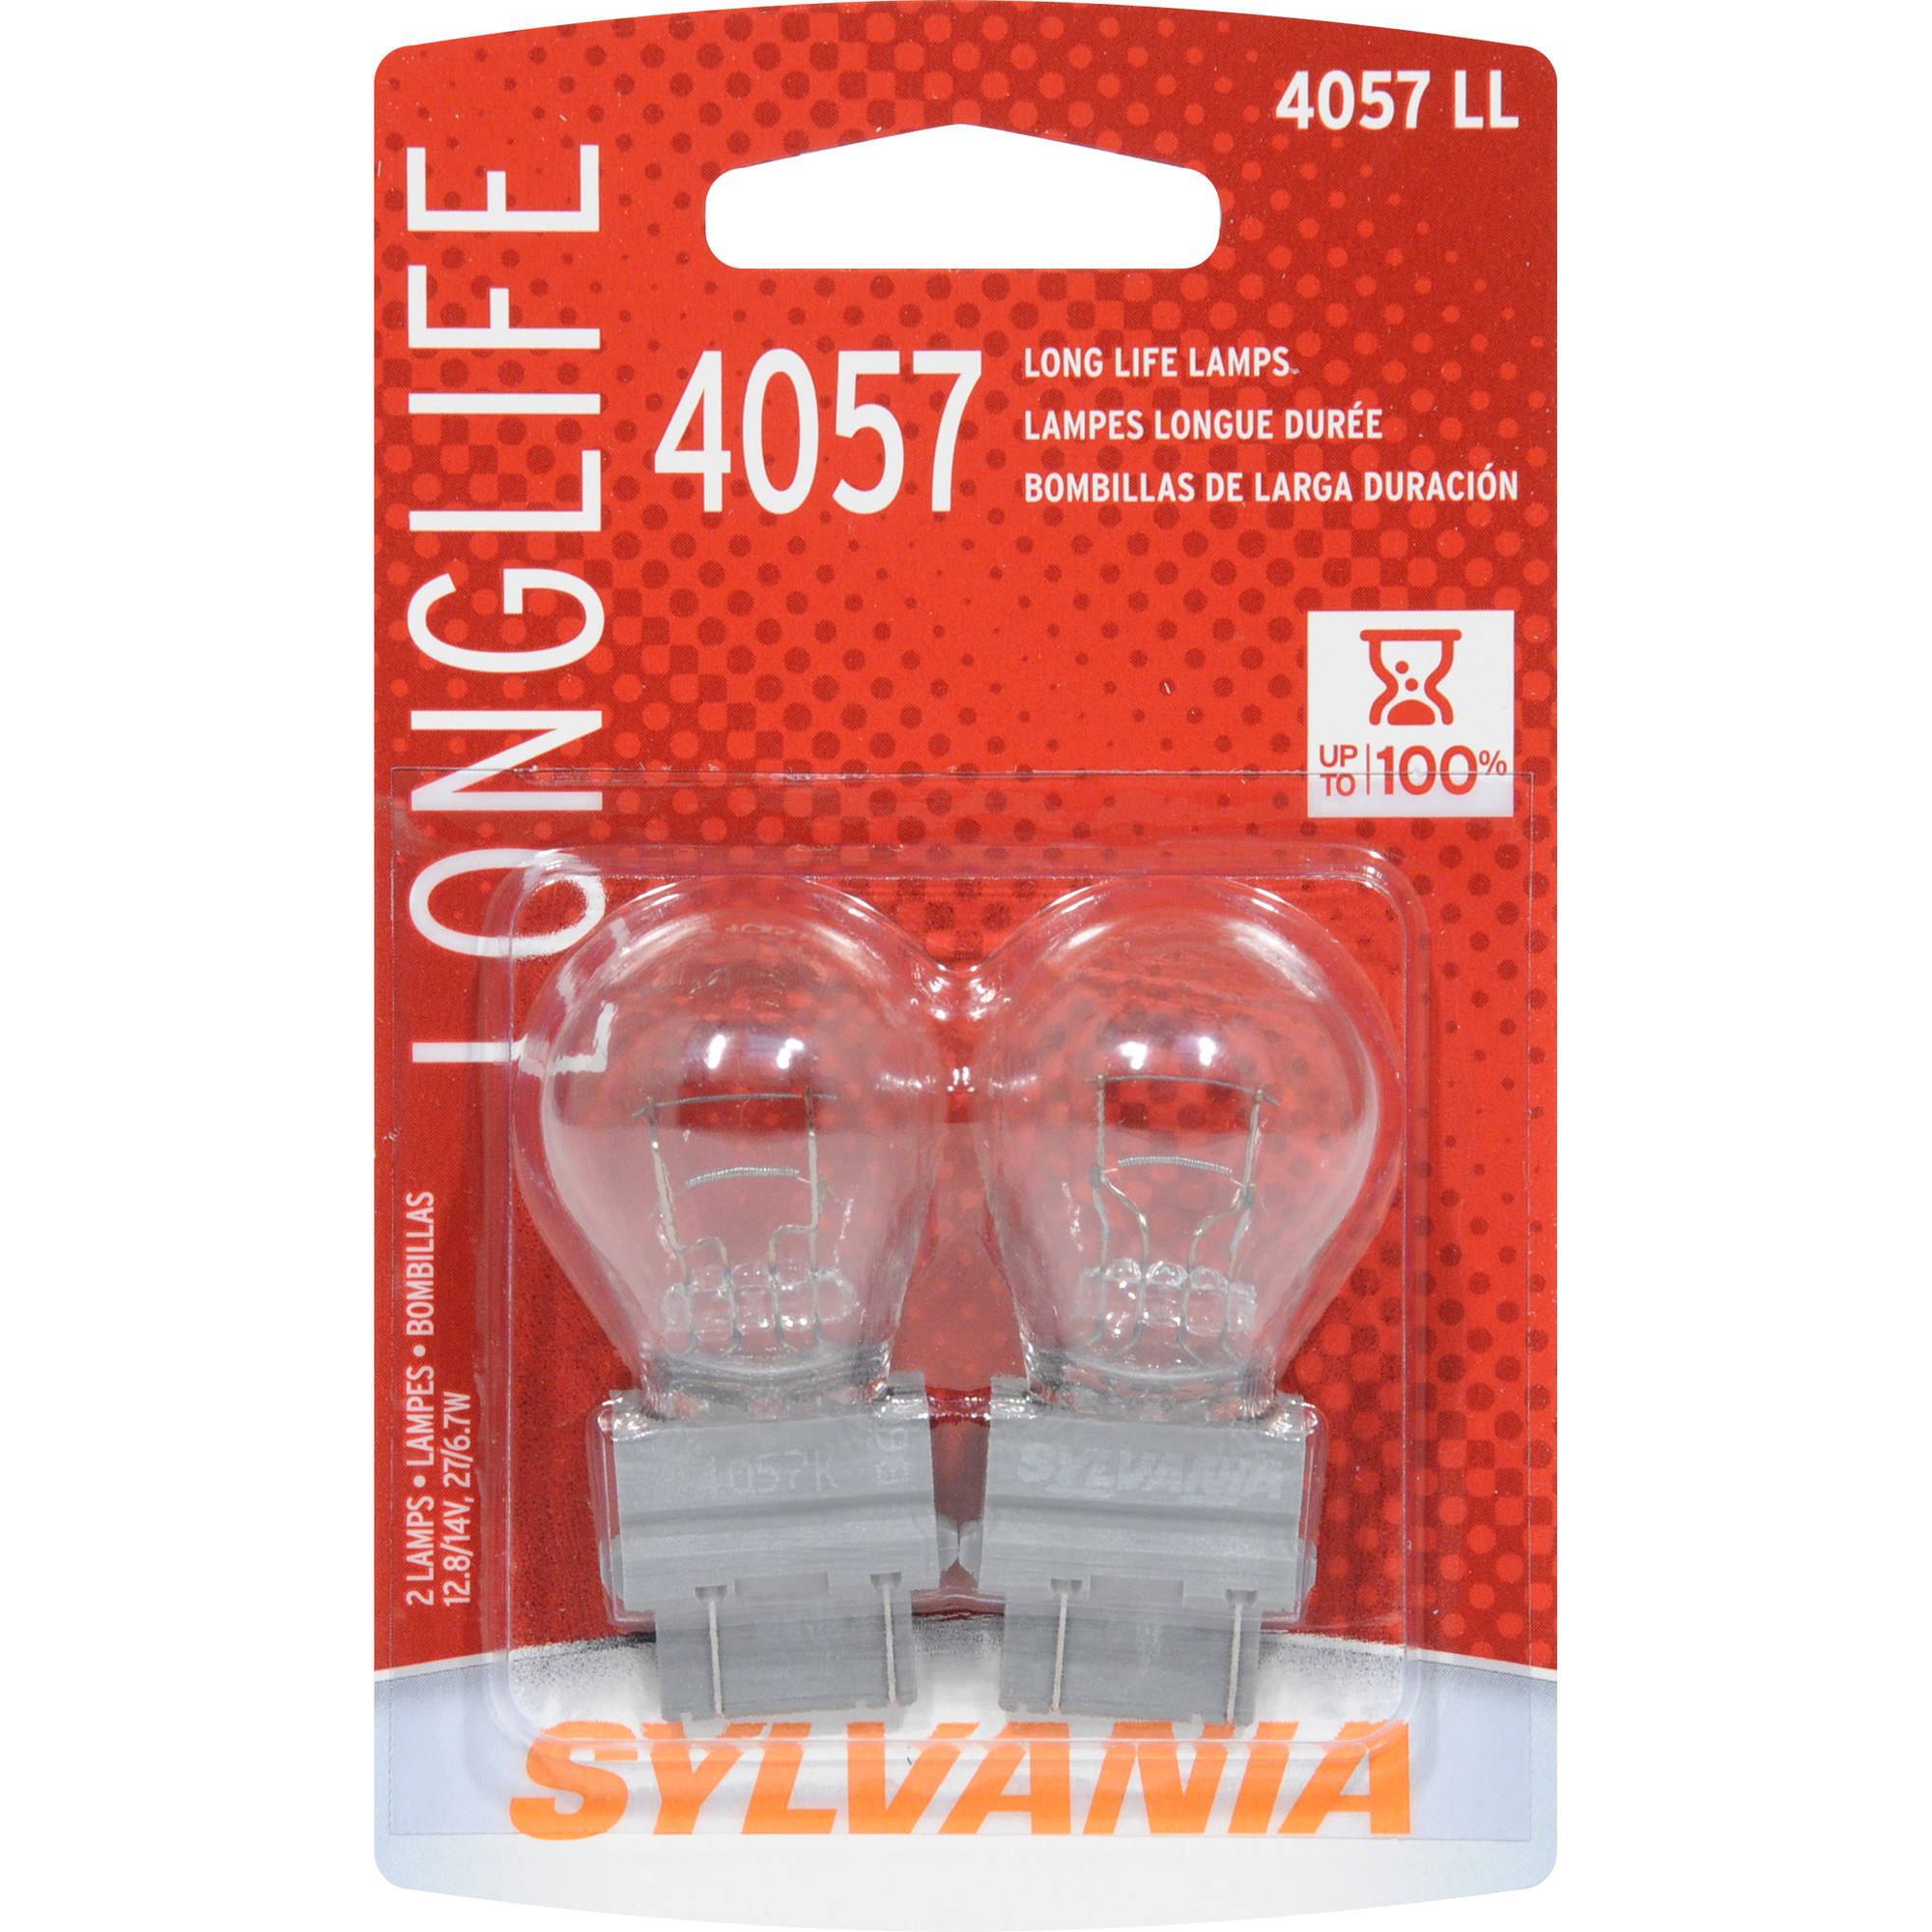 Sylvania 4057 Long Life Miniature Bulb, Contains 2 Bulbs